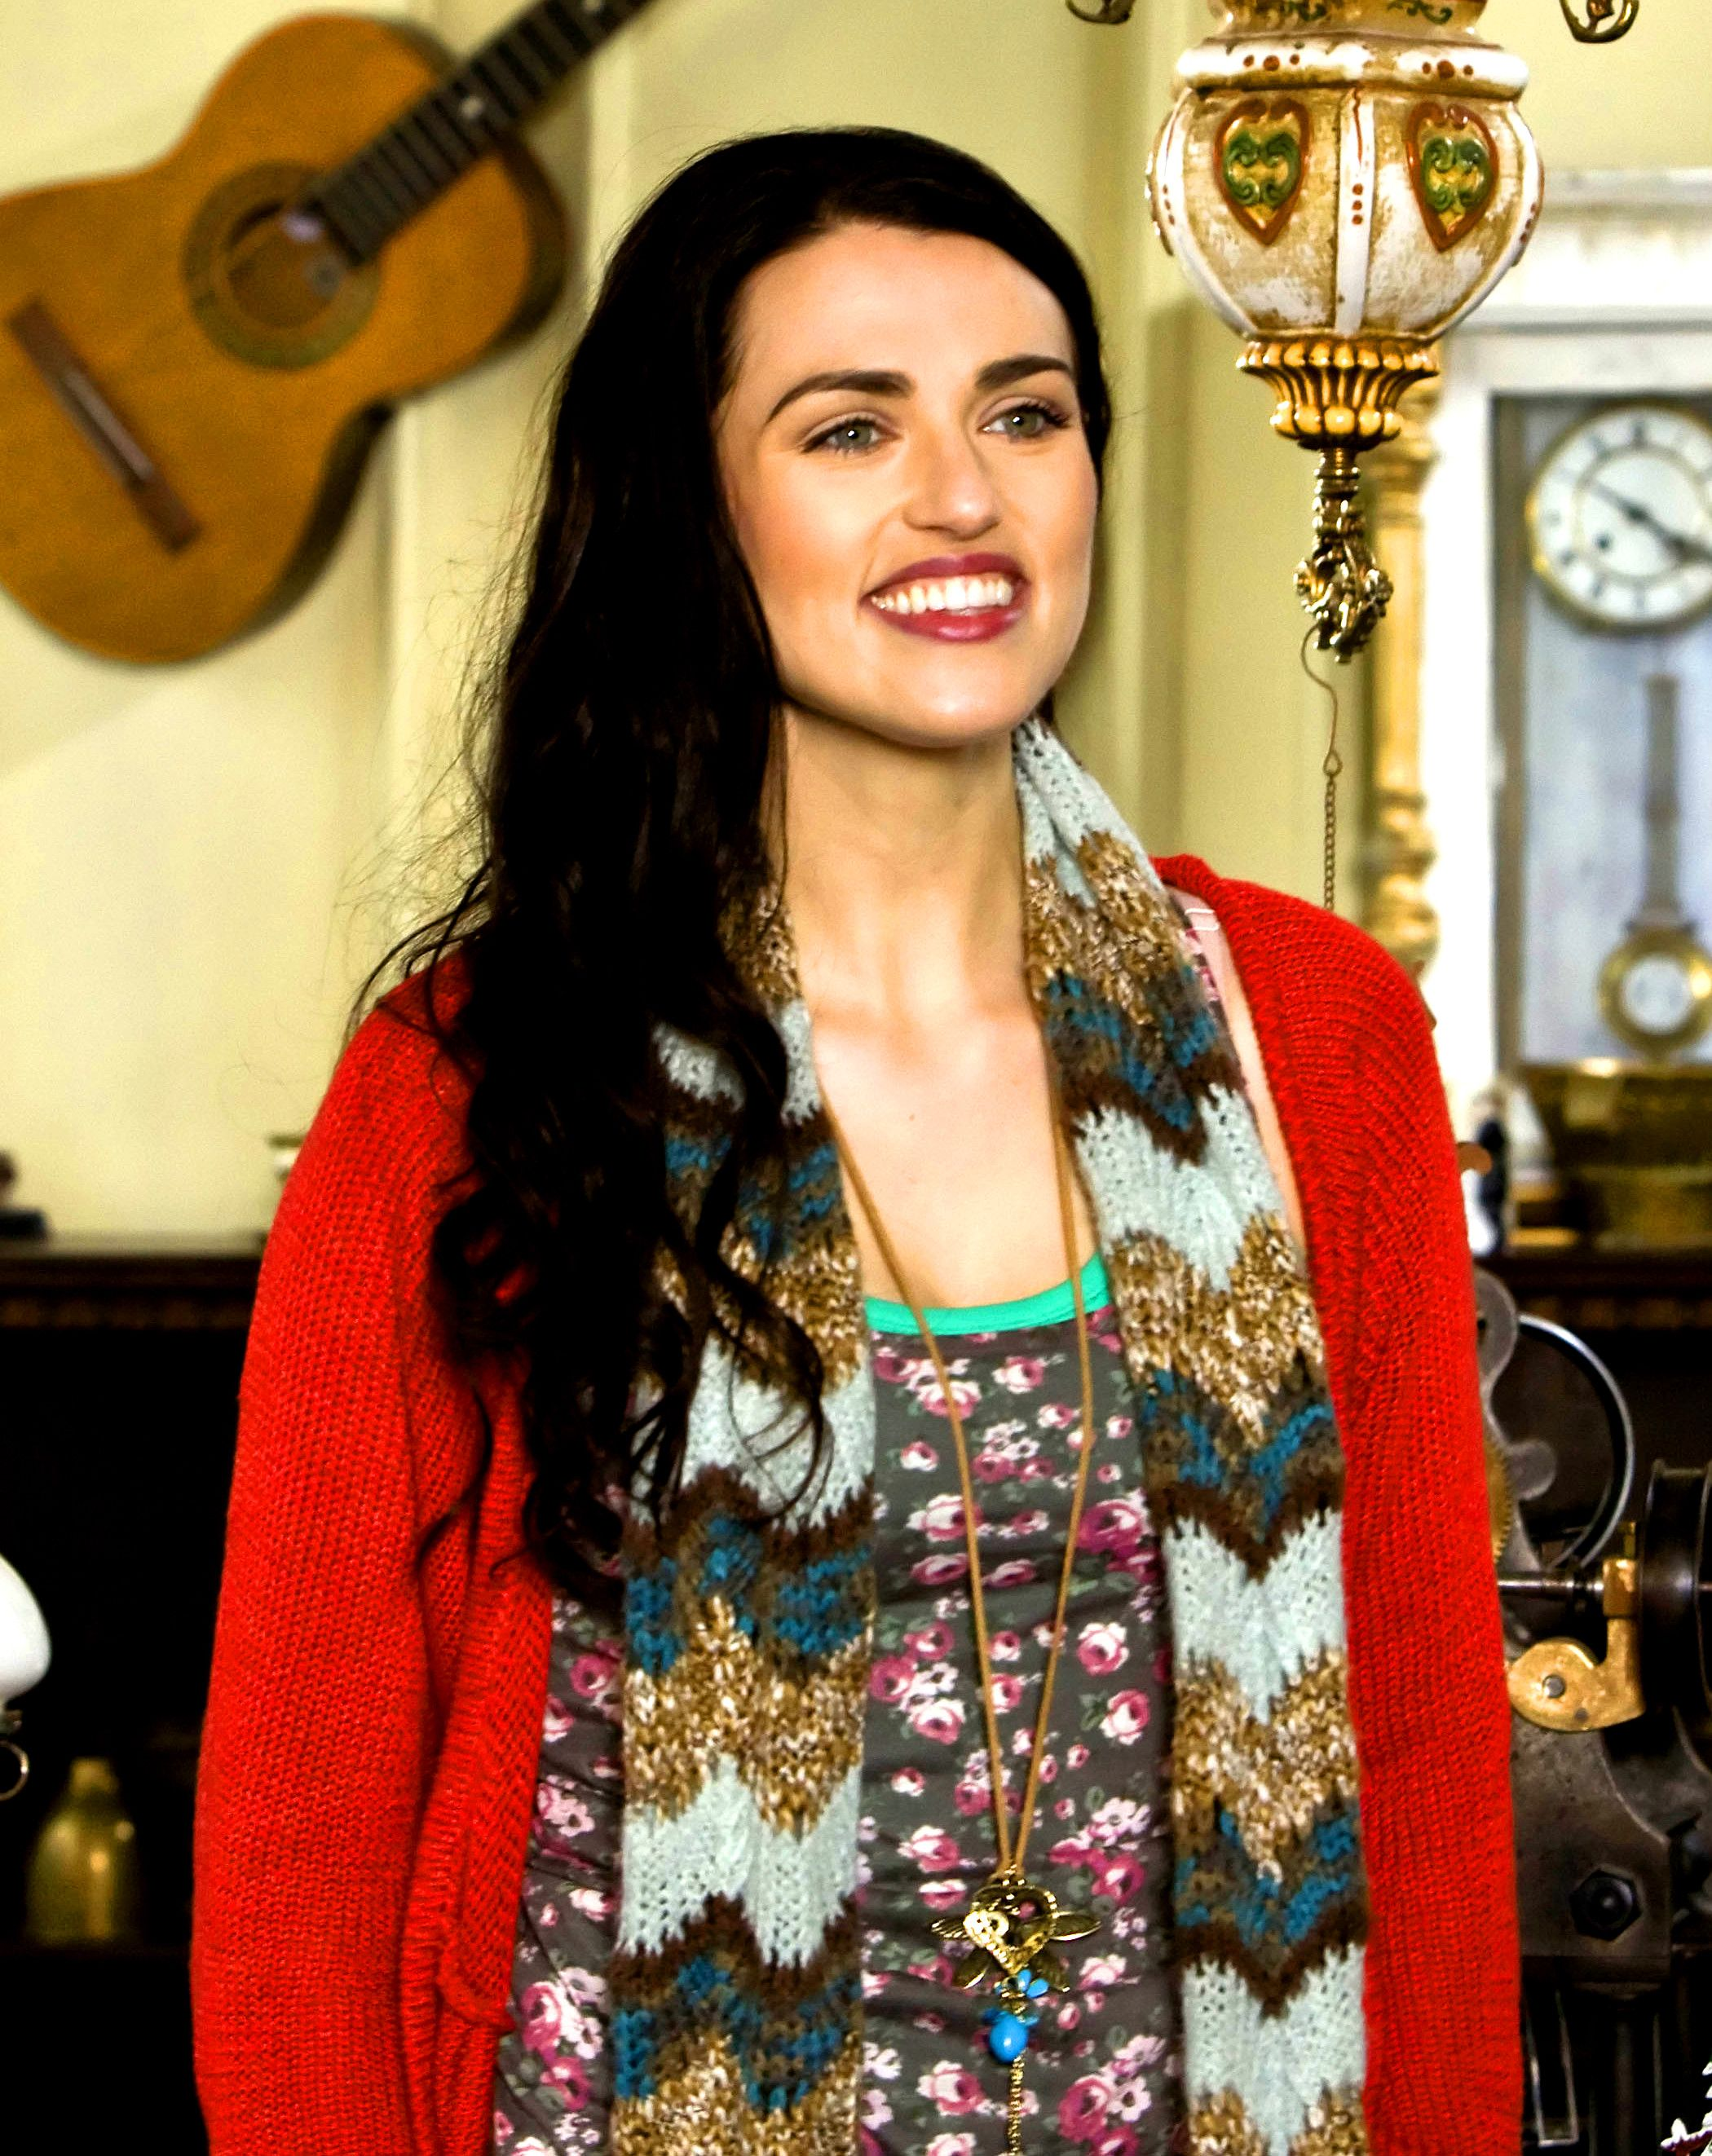 Katie McGrath in A Princess for Christmas | Katie Mcgrath: A ...